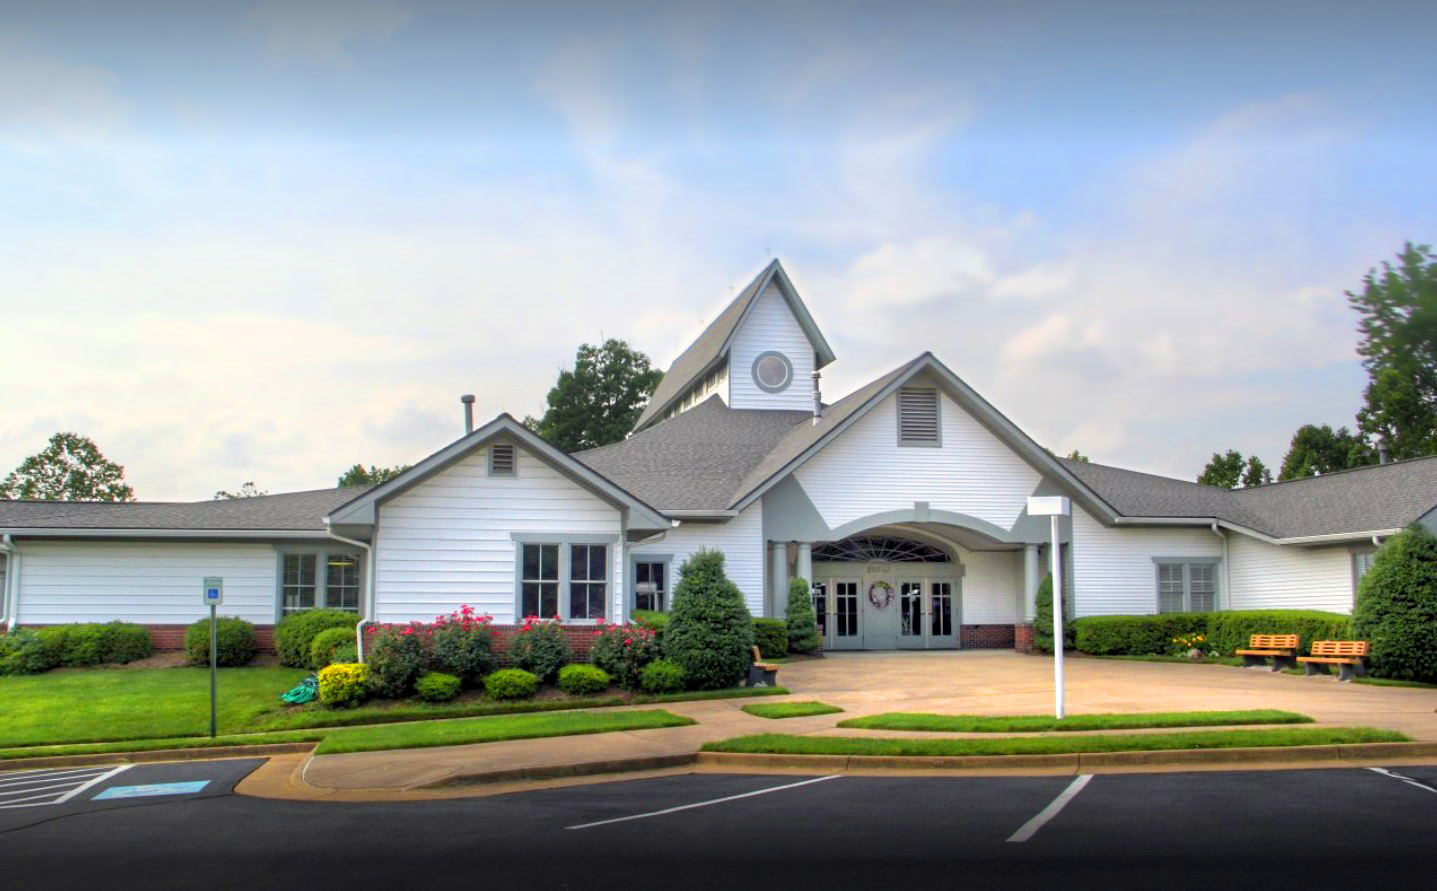 POTOMAC BAPTIST CHURCH